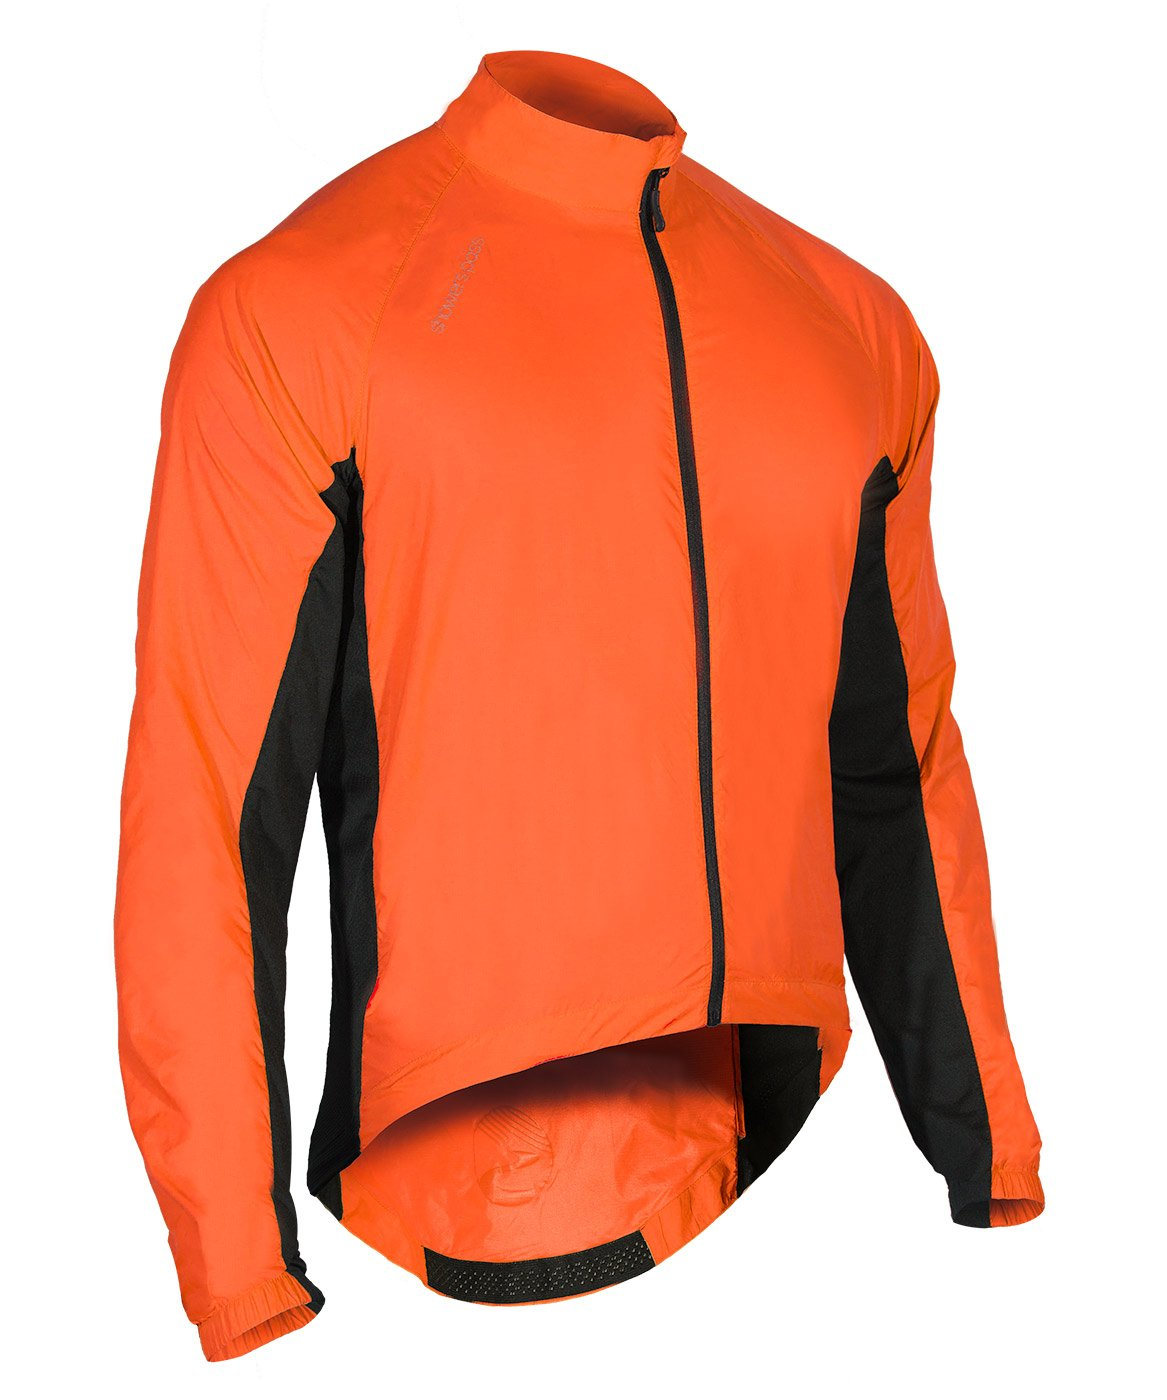 Image result for showers pass ultralight wind jacket